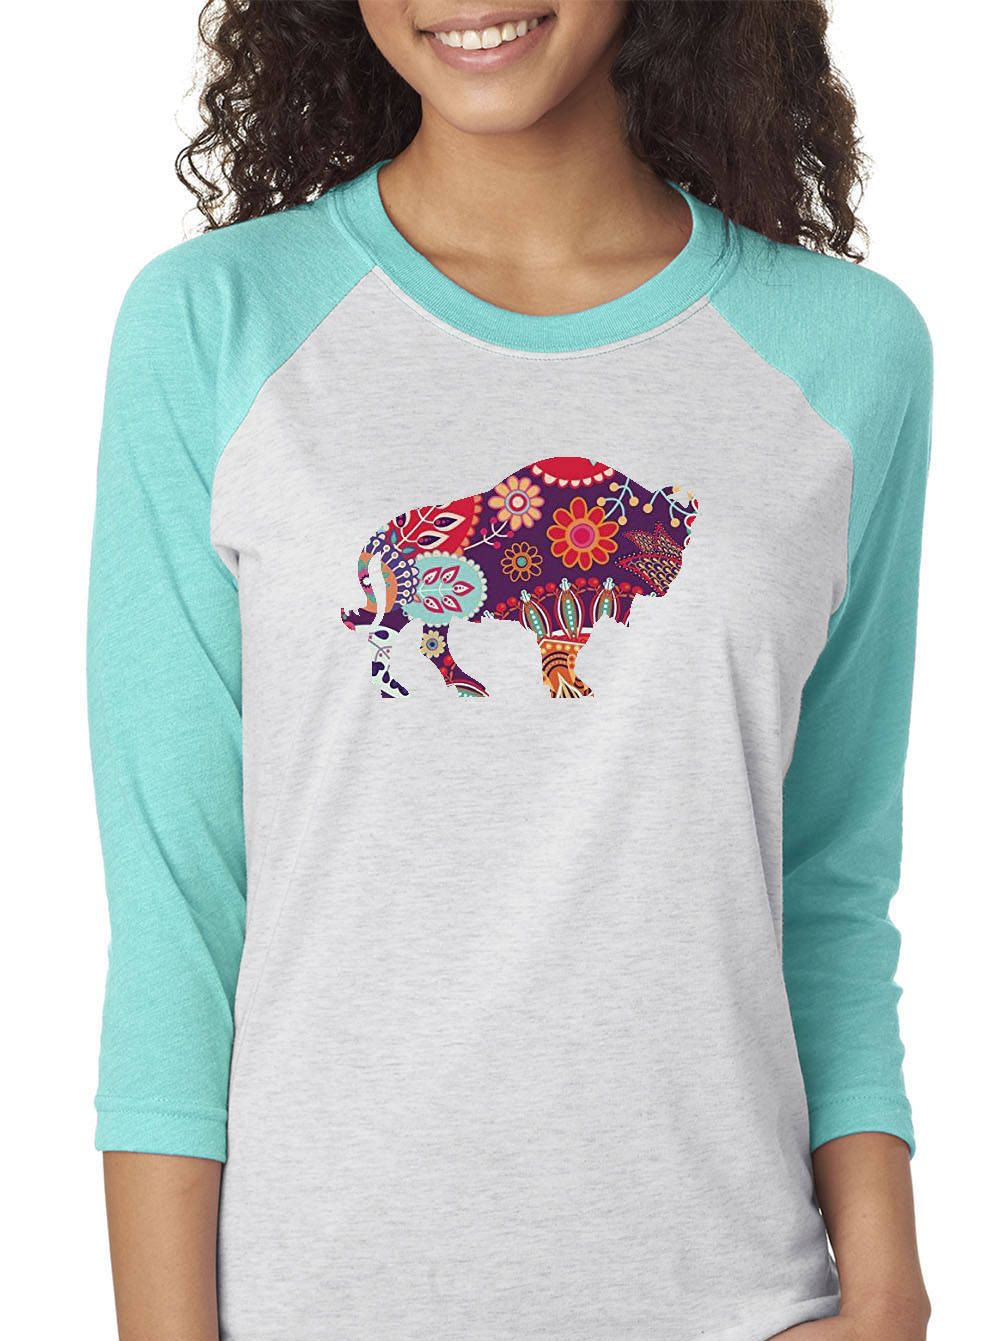 2c2461a42099 Paisley Bison 3/4 Sleeve Baseball Women's T-Shirt - Teal Pink Purple Blue  by LazyKDesignsbyCarrie on Etsy